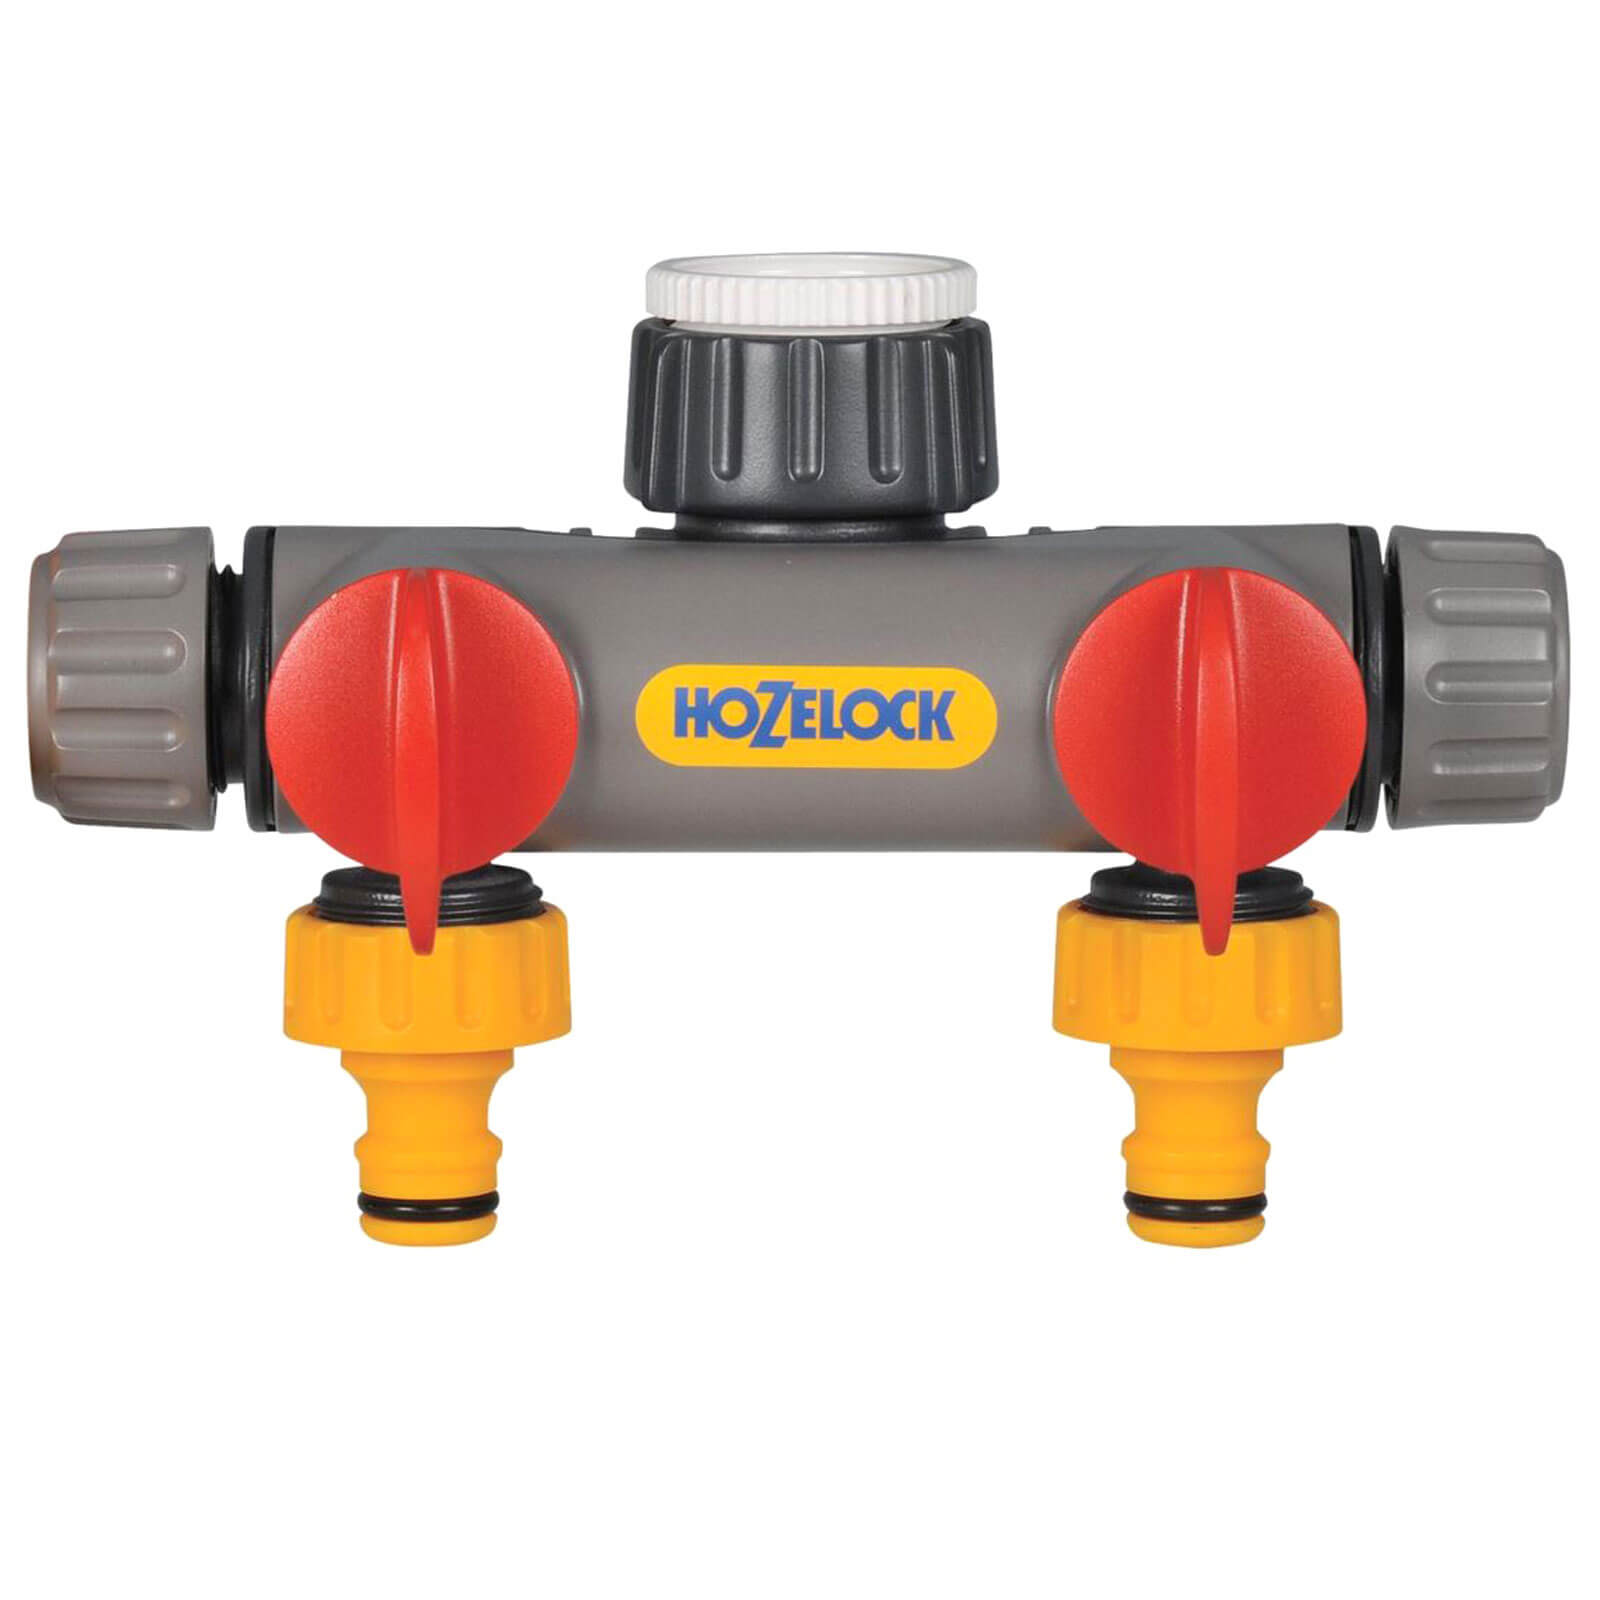 Image of Hozelock 2 Way Threaded Tap Hose Pipe Connector 21mm, 26mm & 33mm